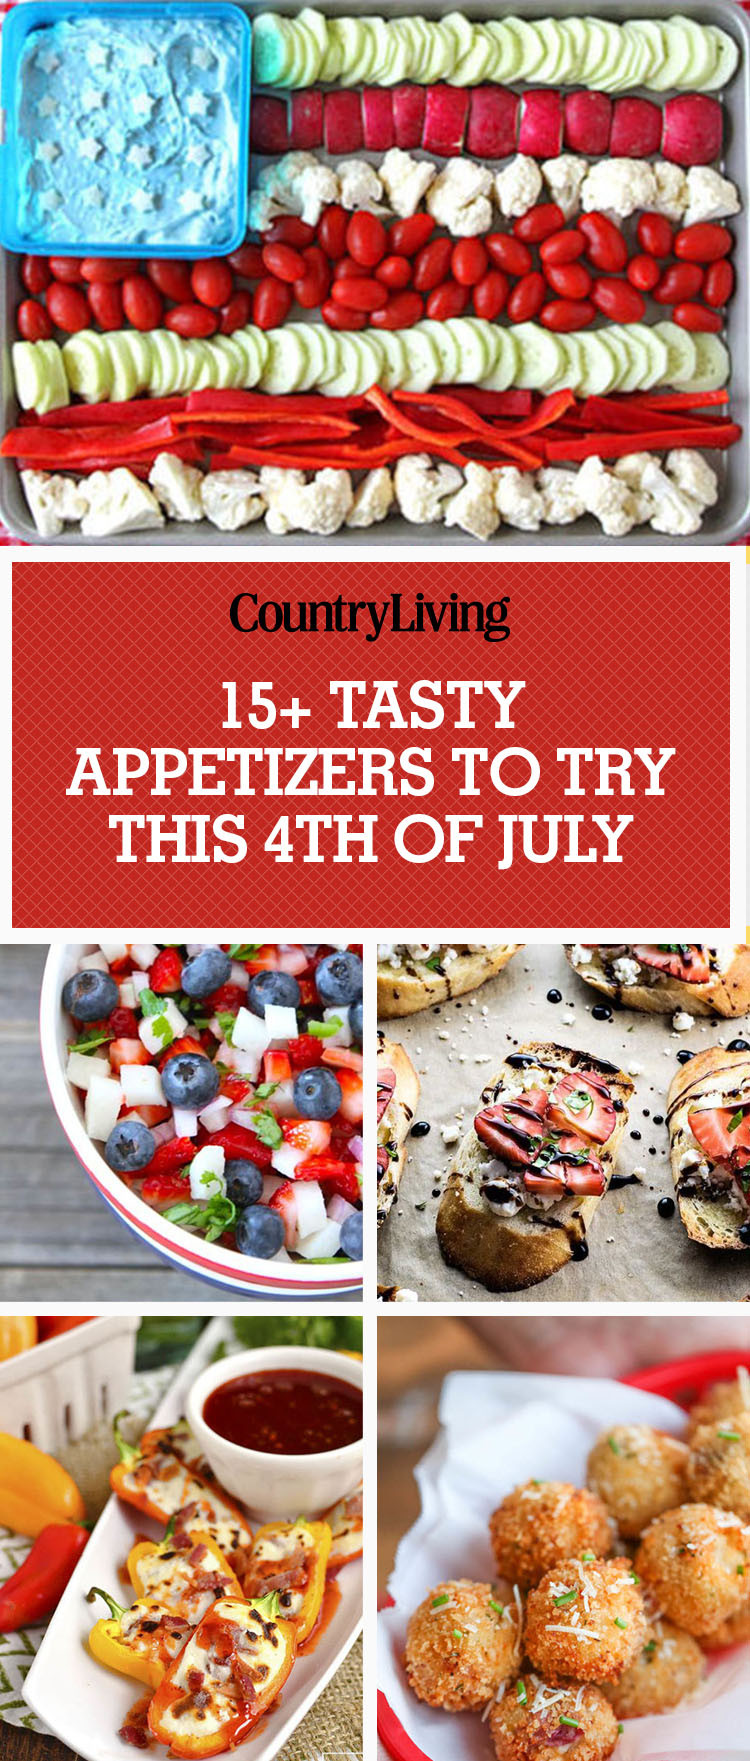 Easy 4Th Of July Appetizers  17 Easy 4th of July Appetizers Best Recipes for Fourth